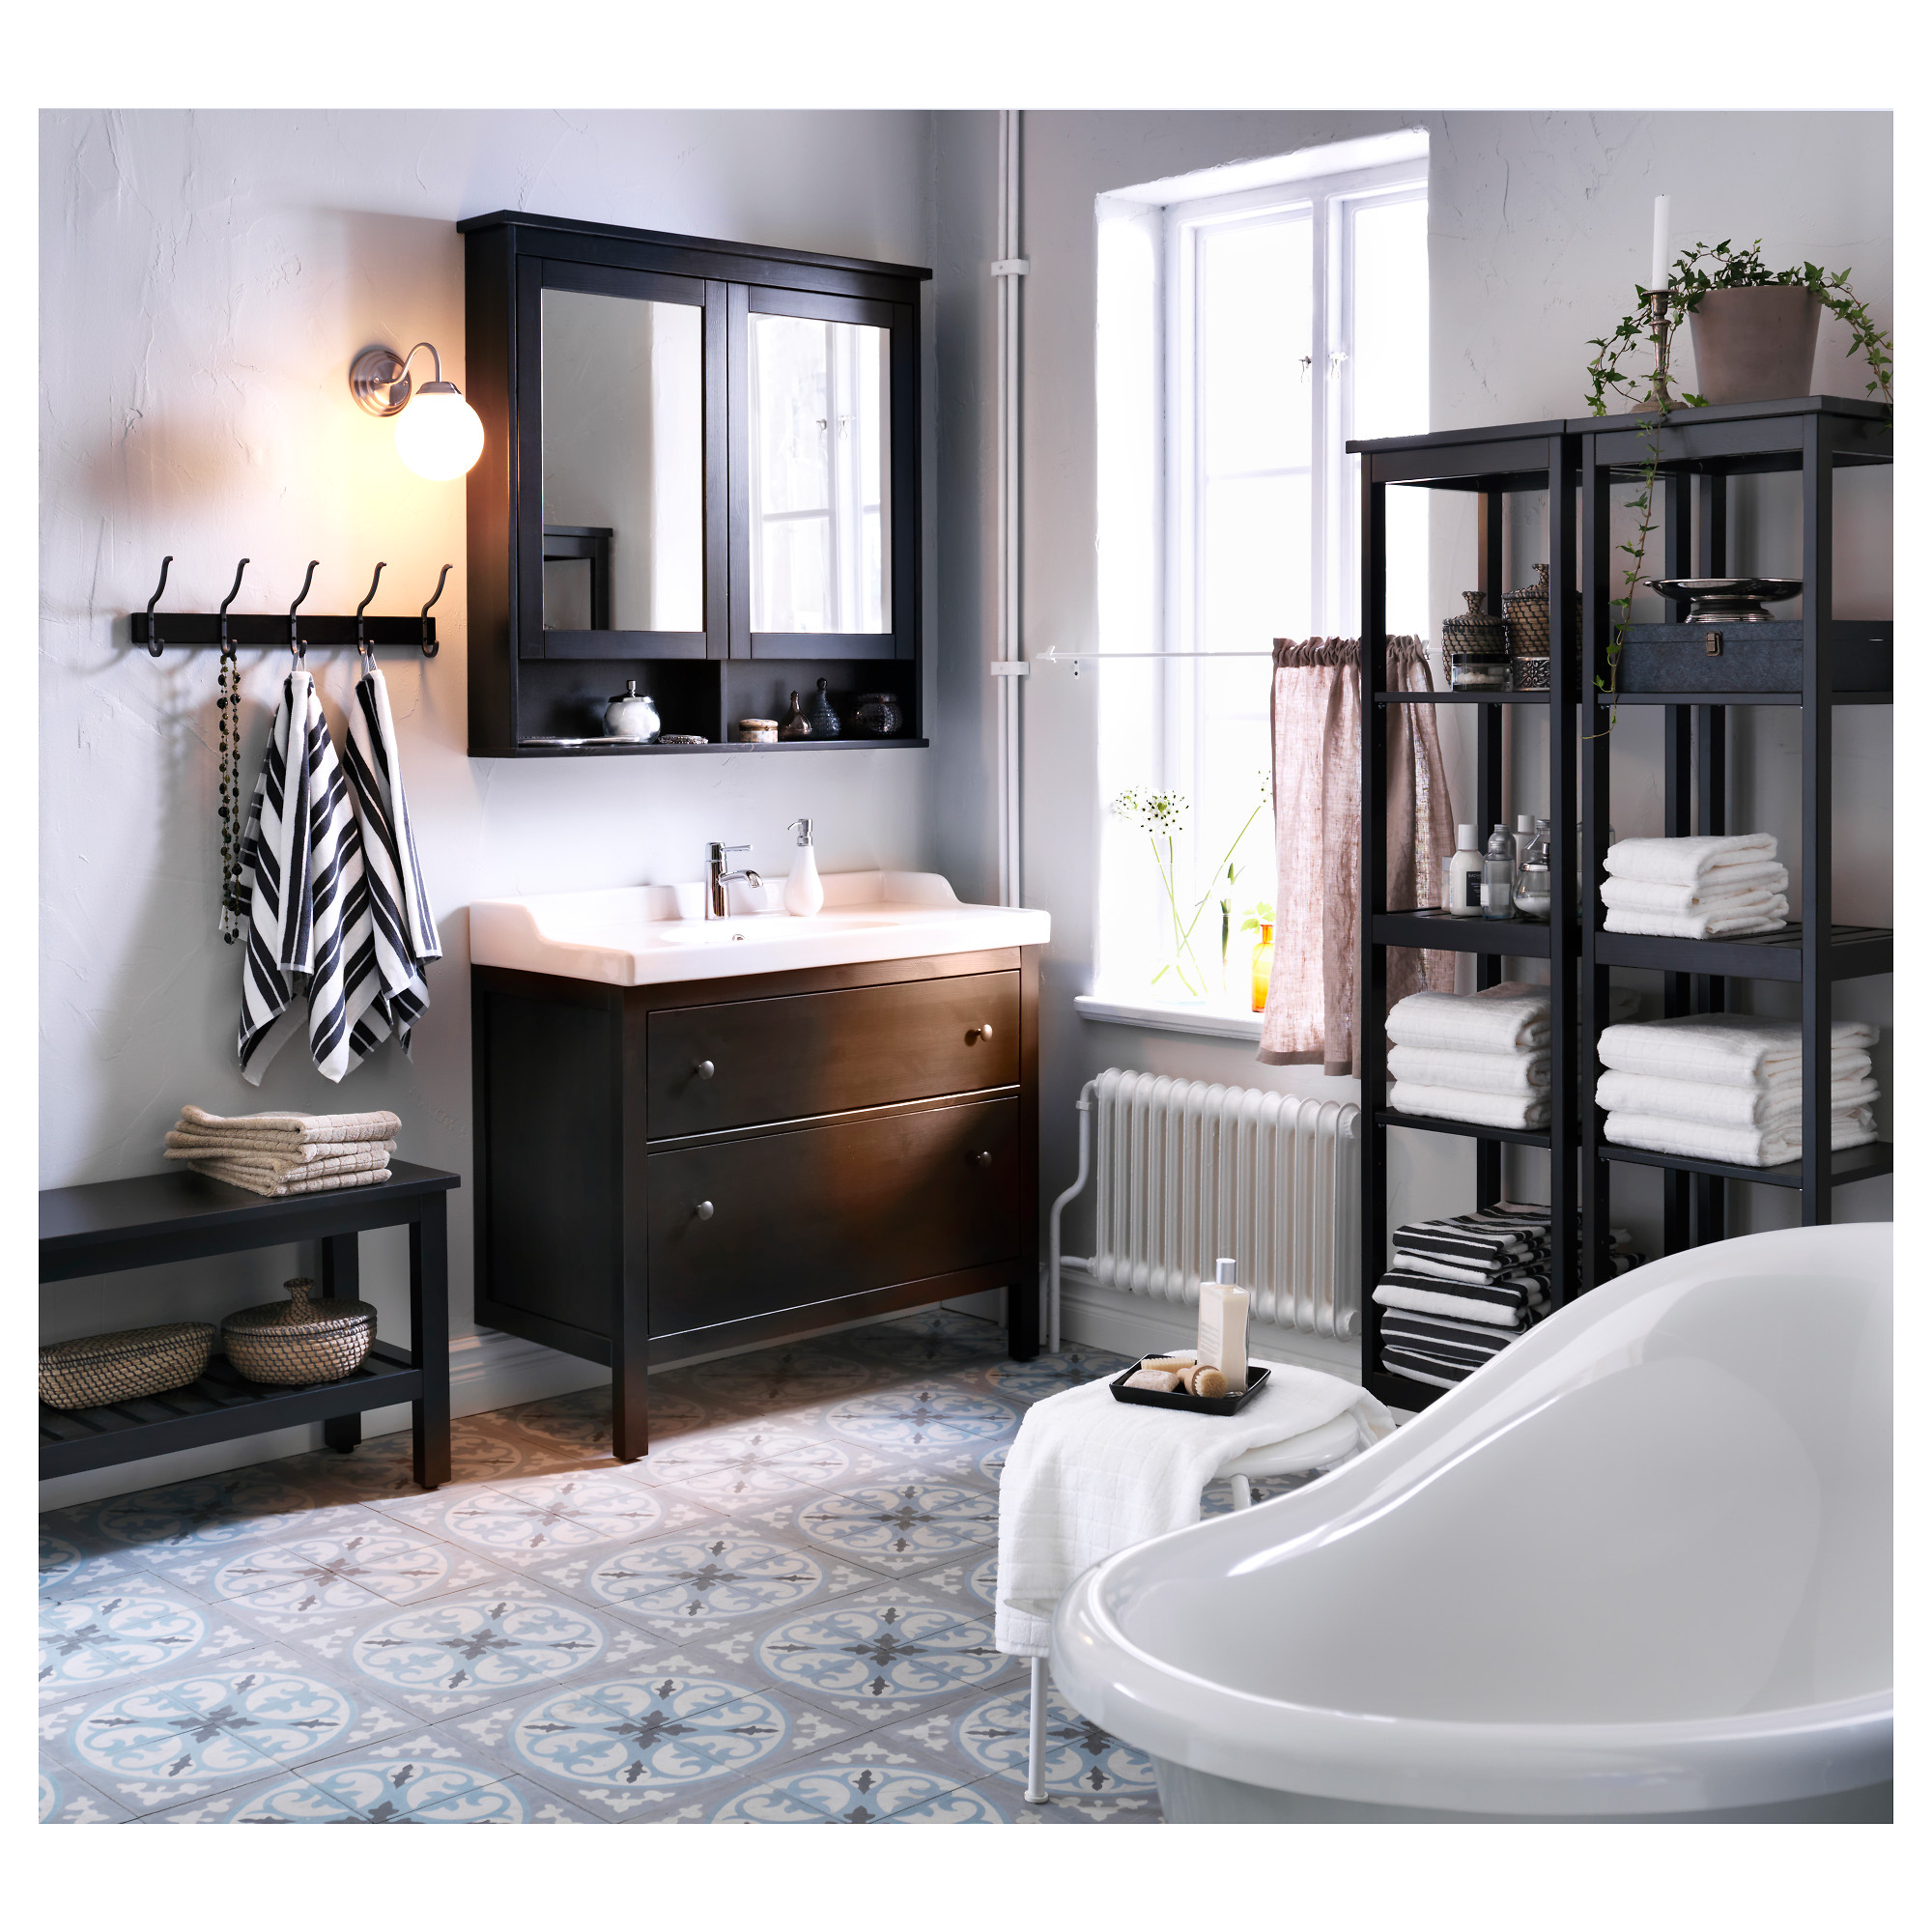 Ikea Bathroom Cabinet Doors set of dining room chairs Home Decorating Ideas